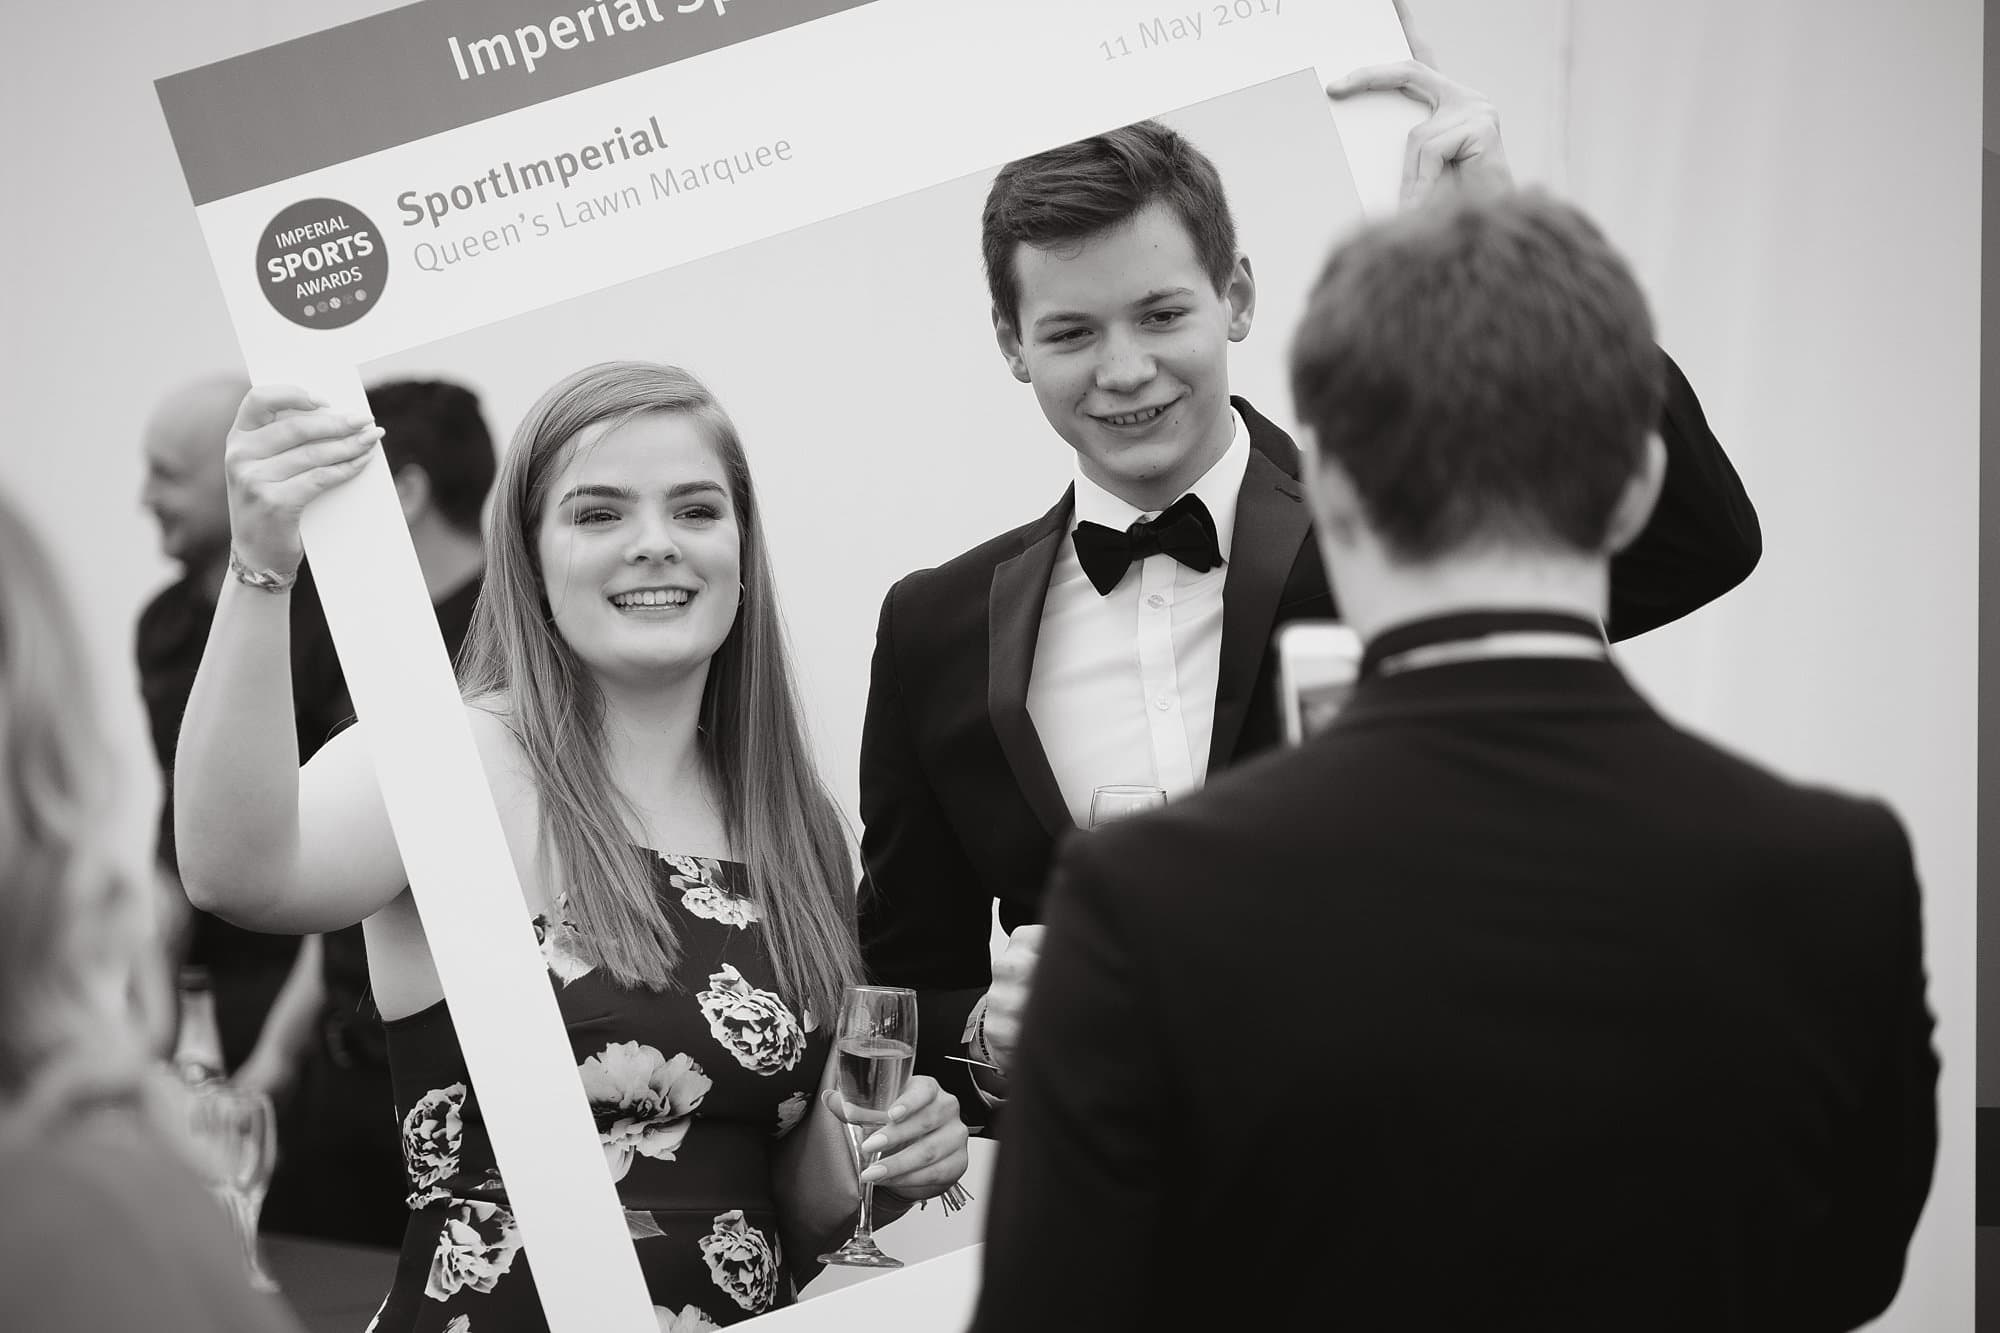 event photographer london icl 2017 004 - Corporate: Imperial Sports Awards